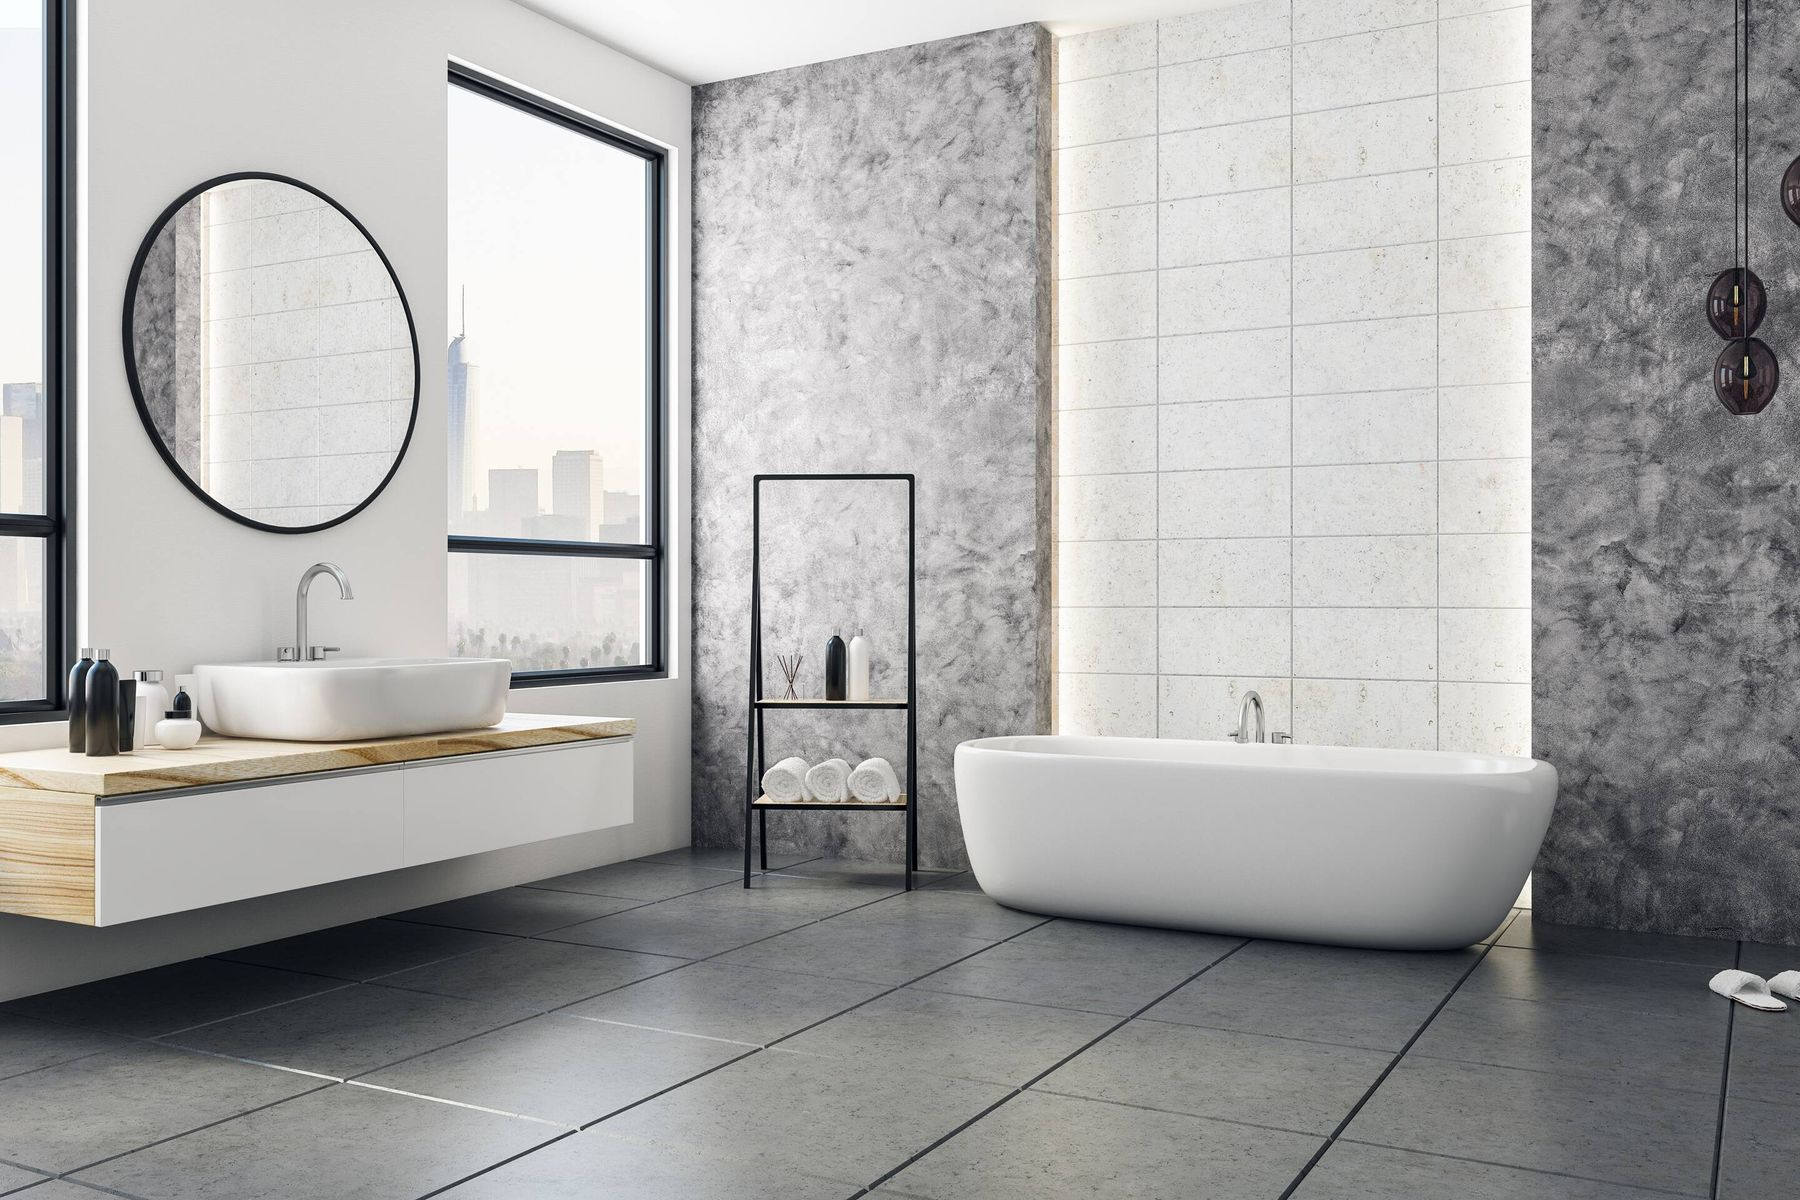 How to Get your Bathroom Fixtures Smudge-Free